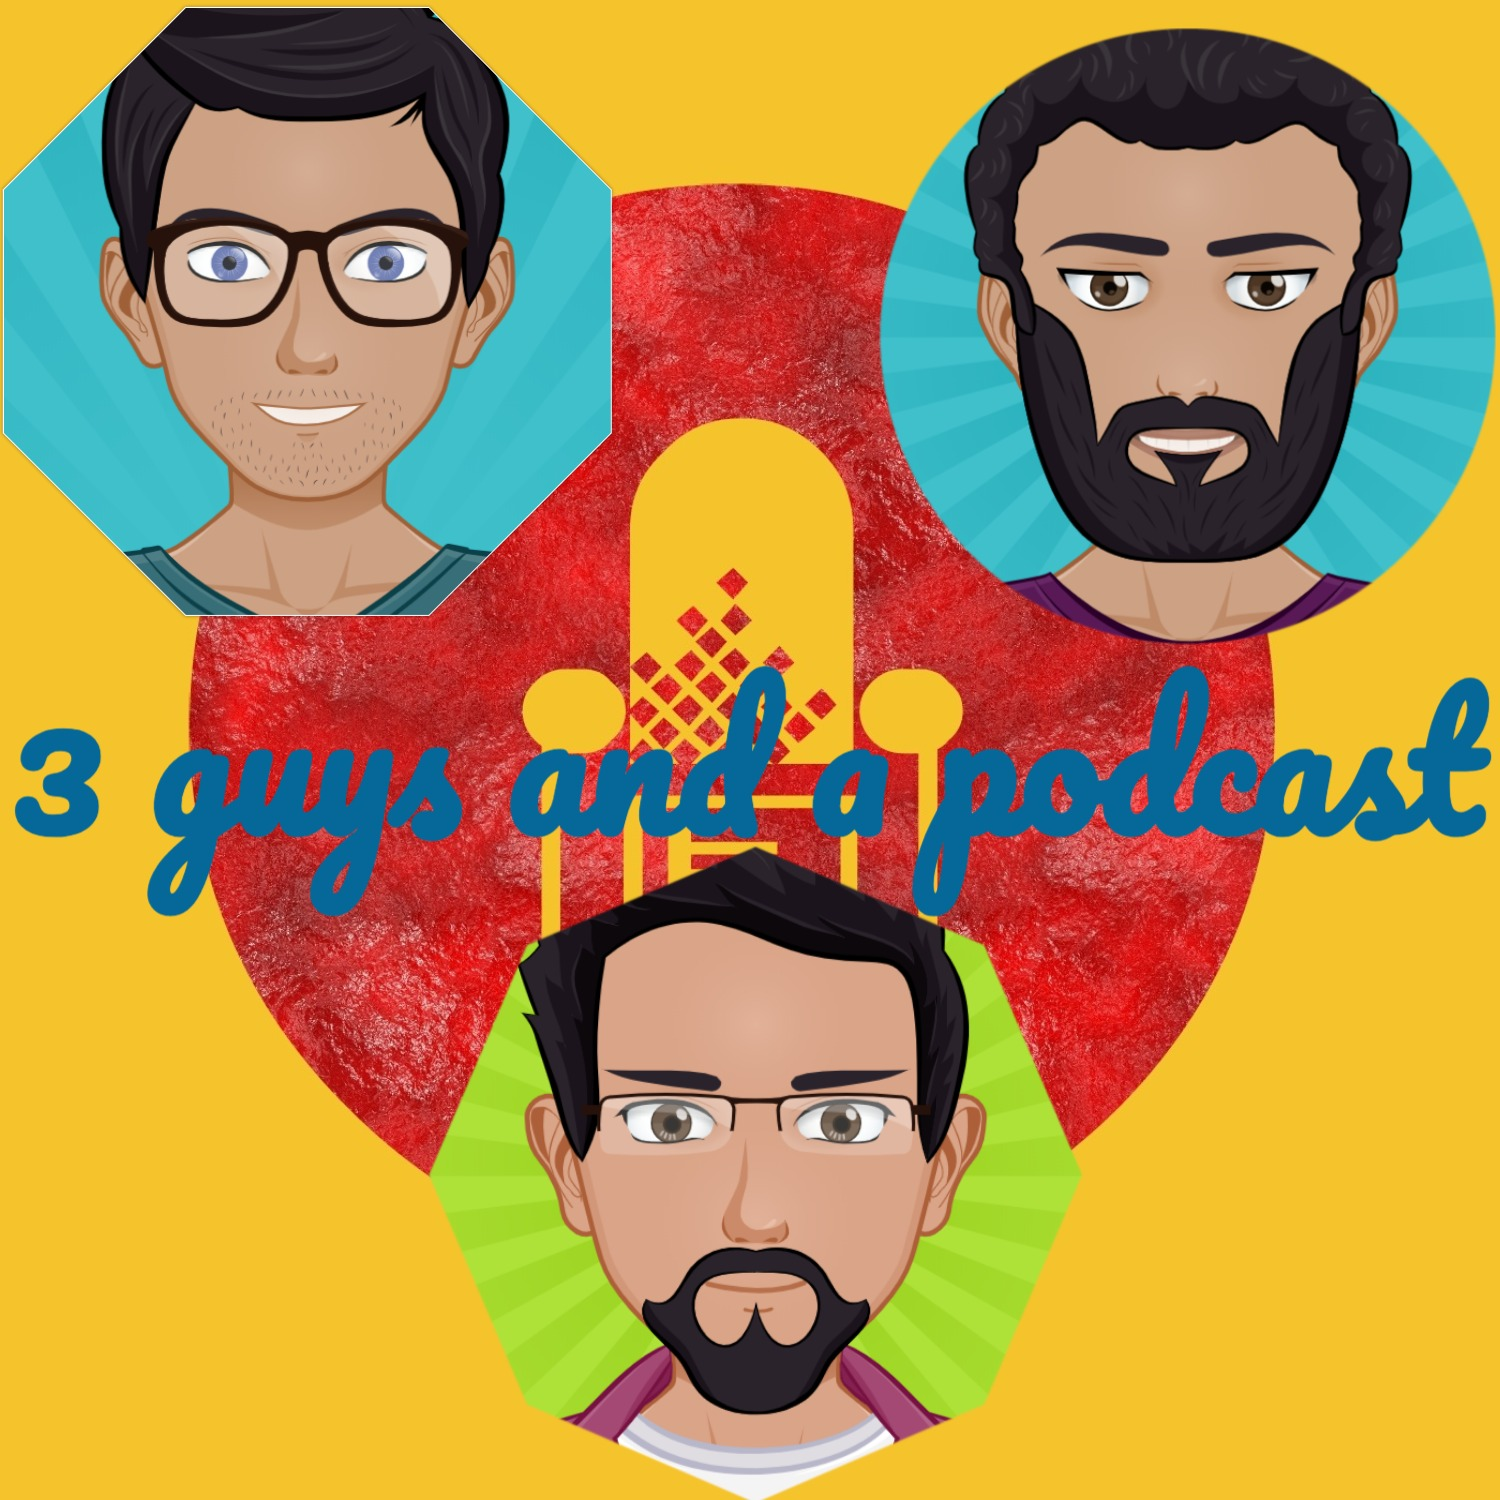 Episode 1 | Three Guys Podcast | Commencing Shit-talking | Pilot test |